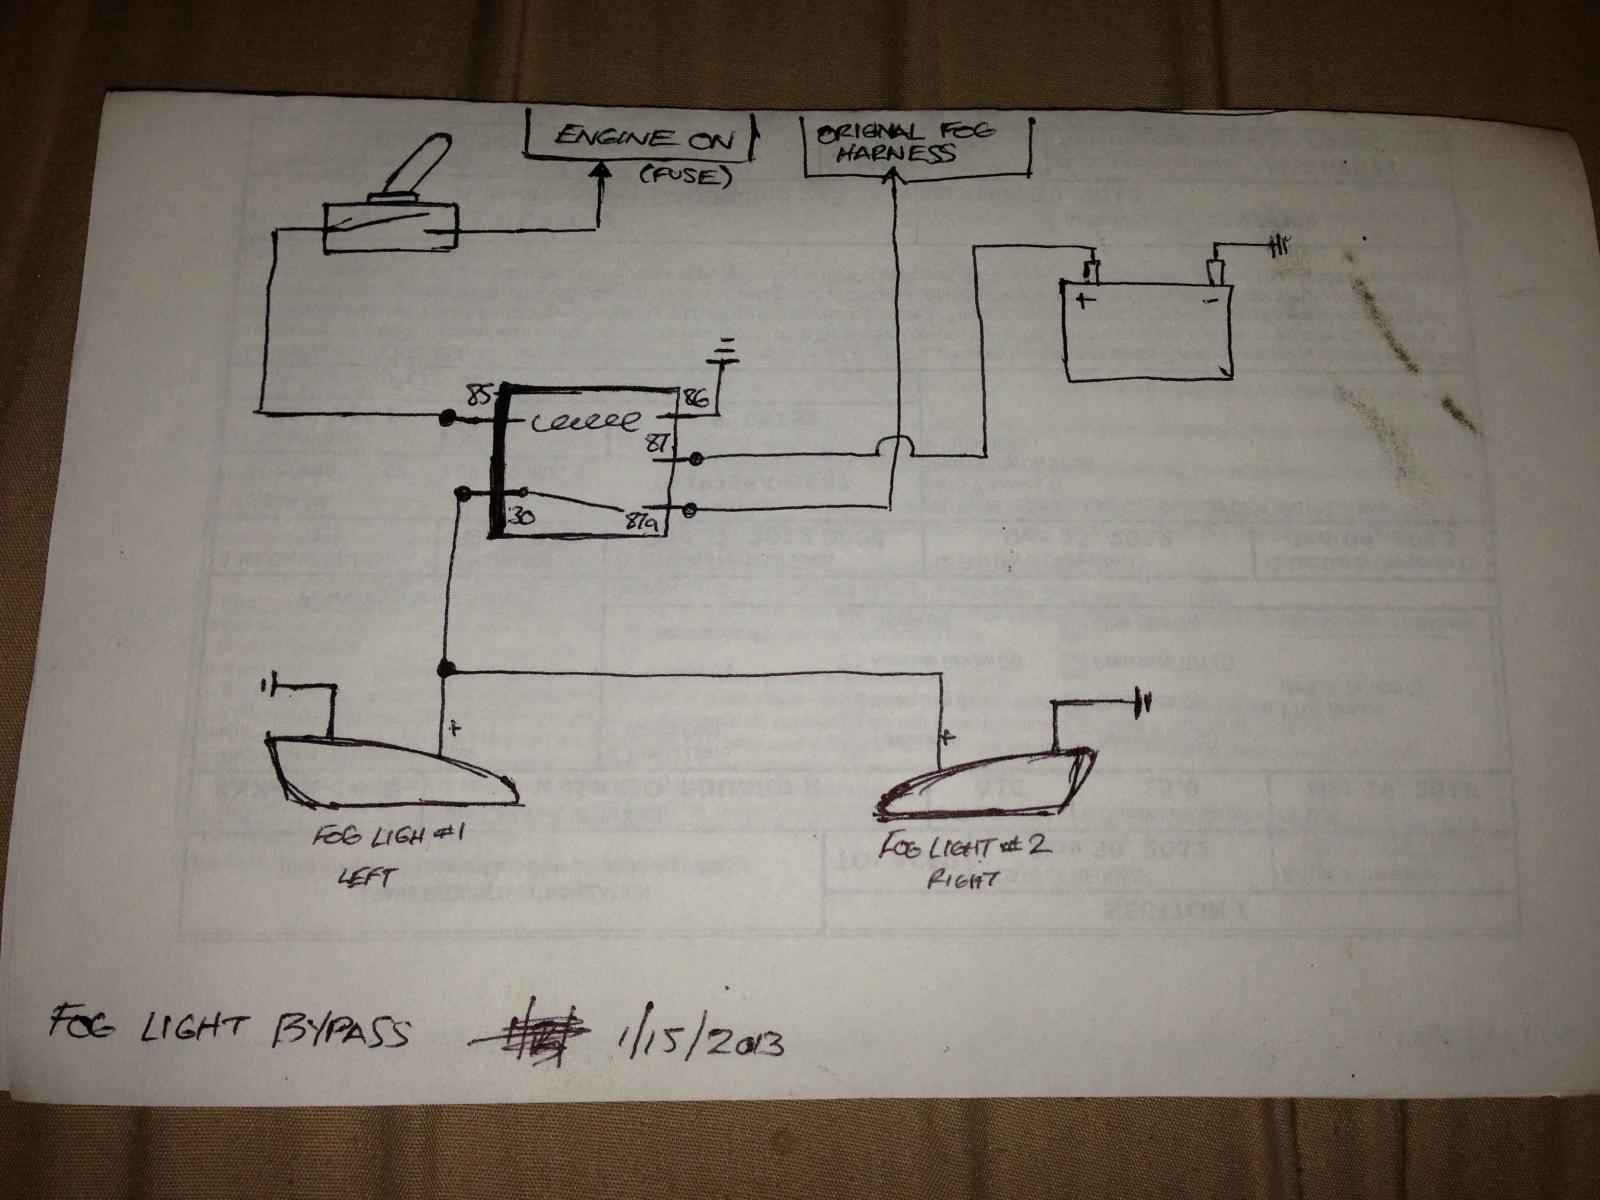 simple wiring diagram to bypass foglights (works w o headlights or Kia Steering Diagram  Kia Sorento Wiring-Diagram Kia Transmission Diagram Wiring Diagram for 2007 Kia Optima